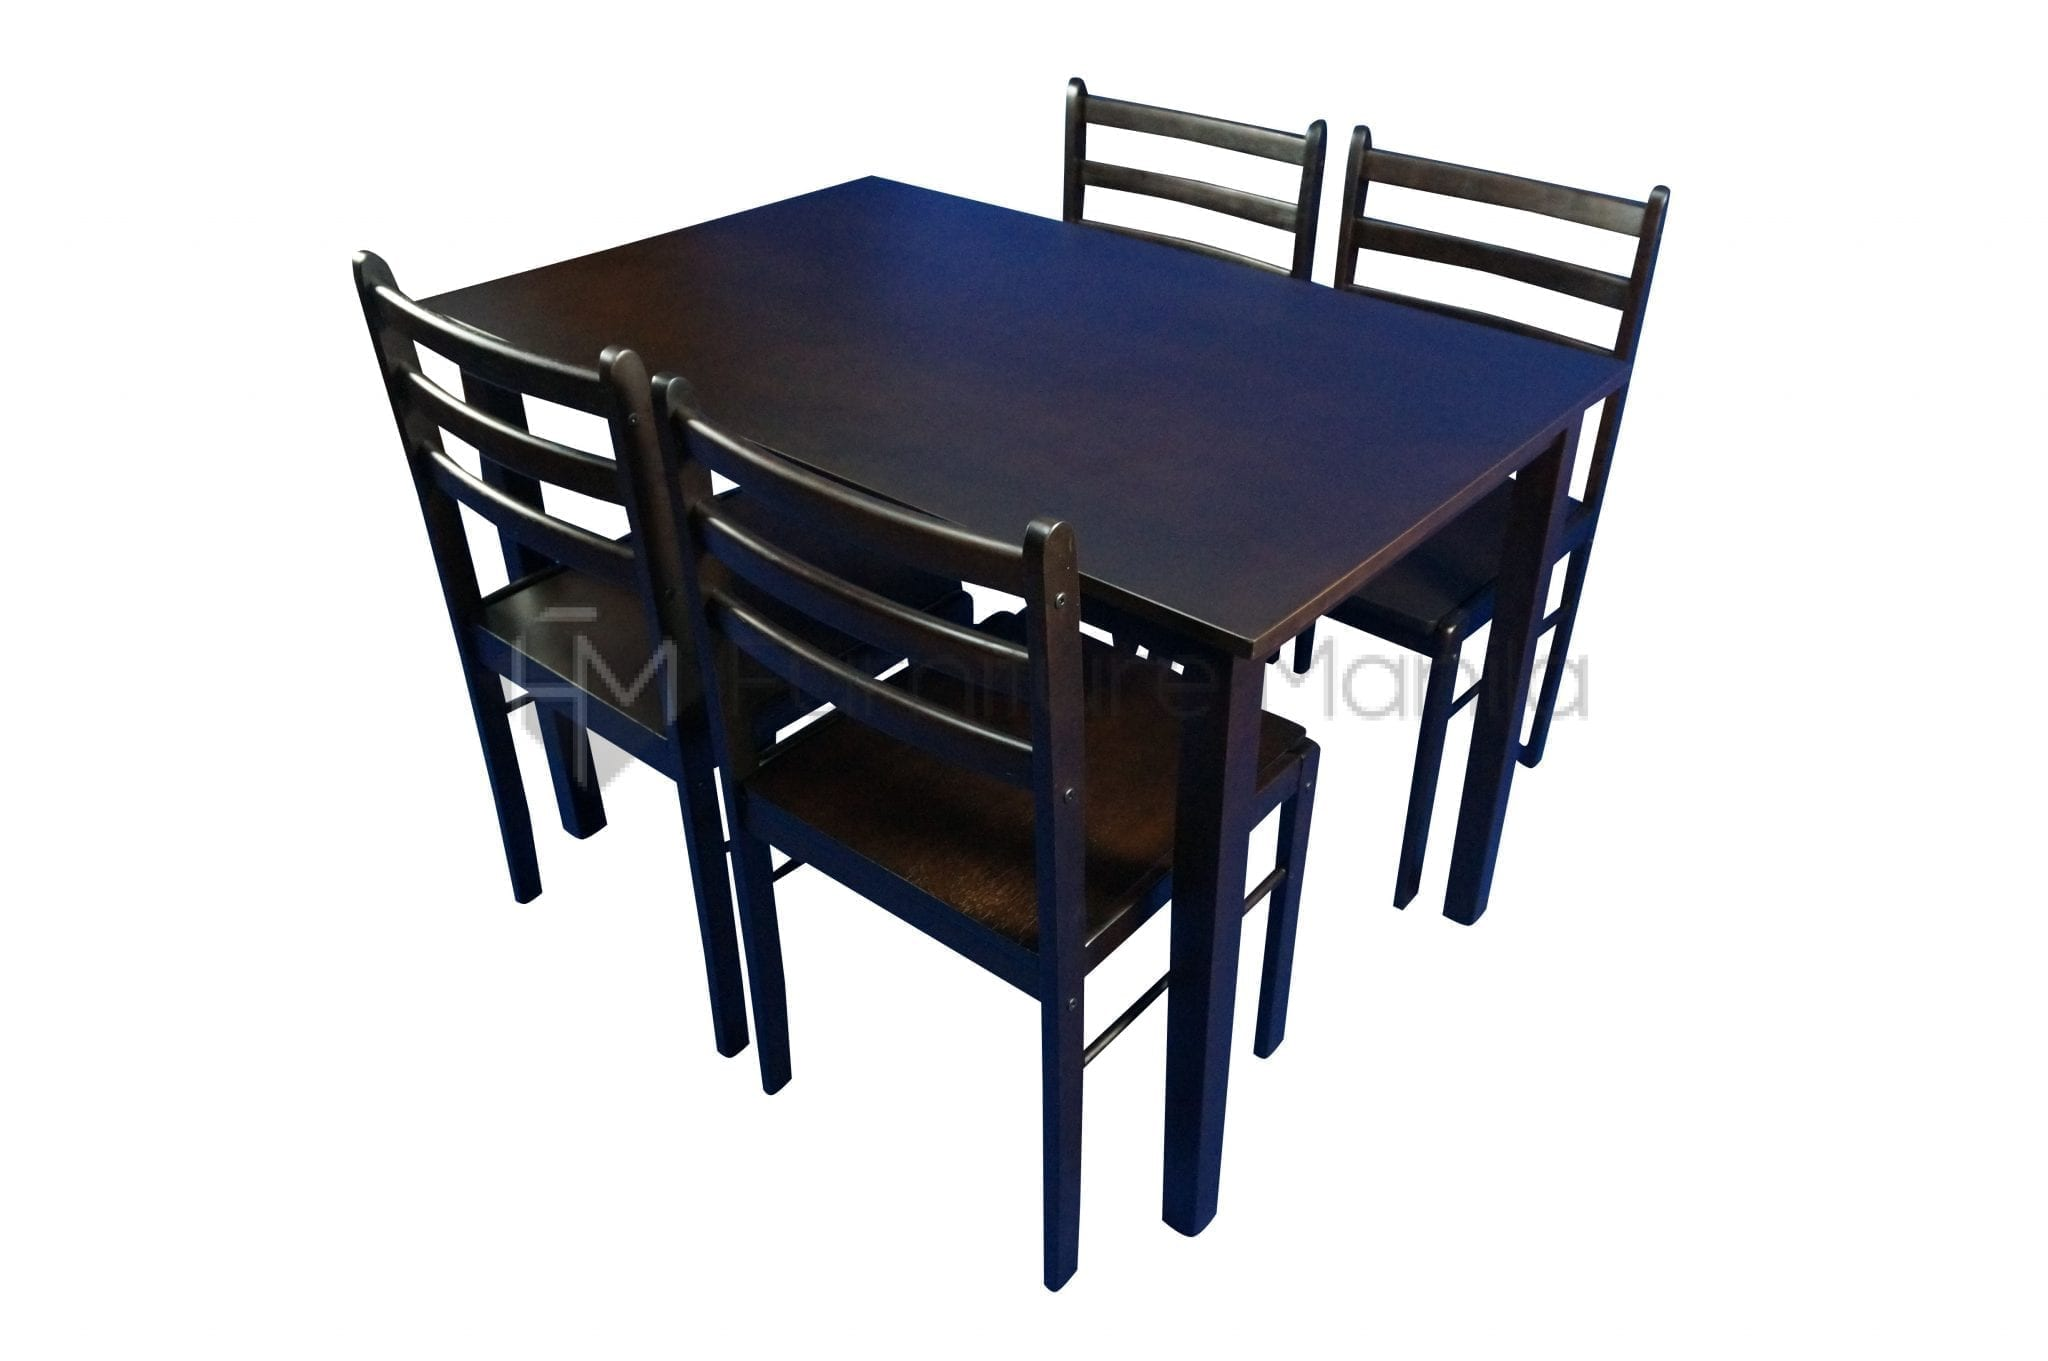 Muebles Valenzuela Tui - Starter Dining Set Home Office Furniture Philippines[mjhdah]http://company.playmobil.com/Company/sites/default/files/inline-images/Funpark_Paris.jpg